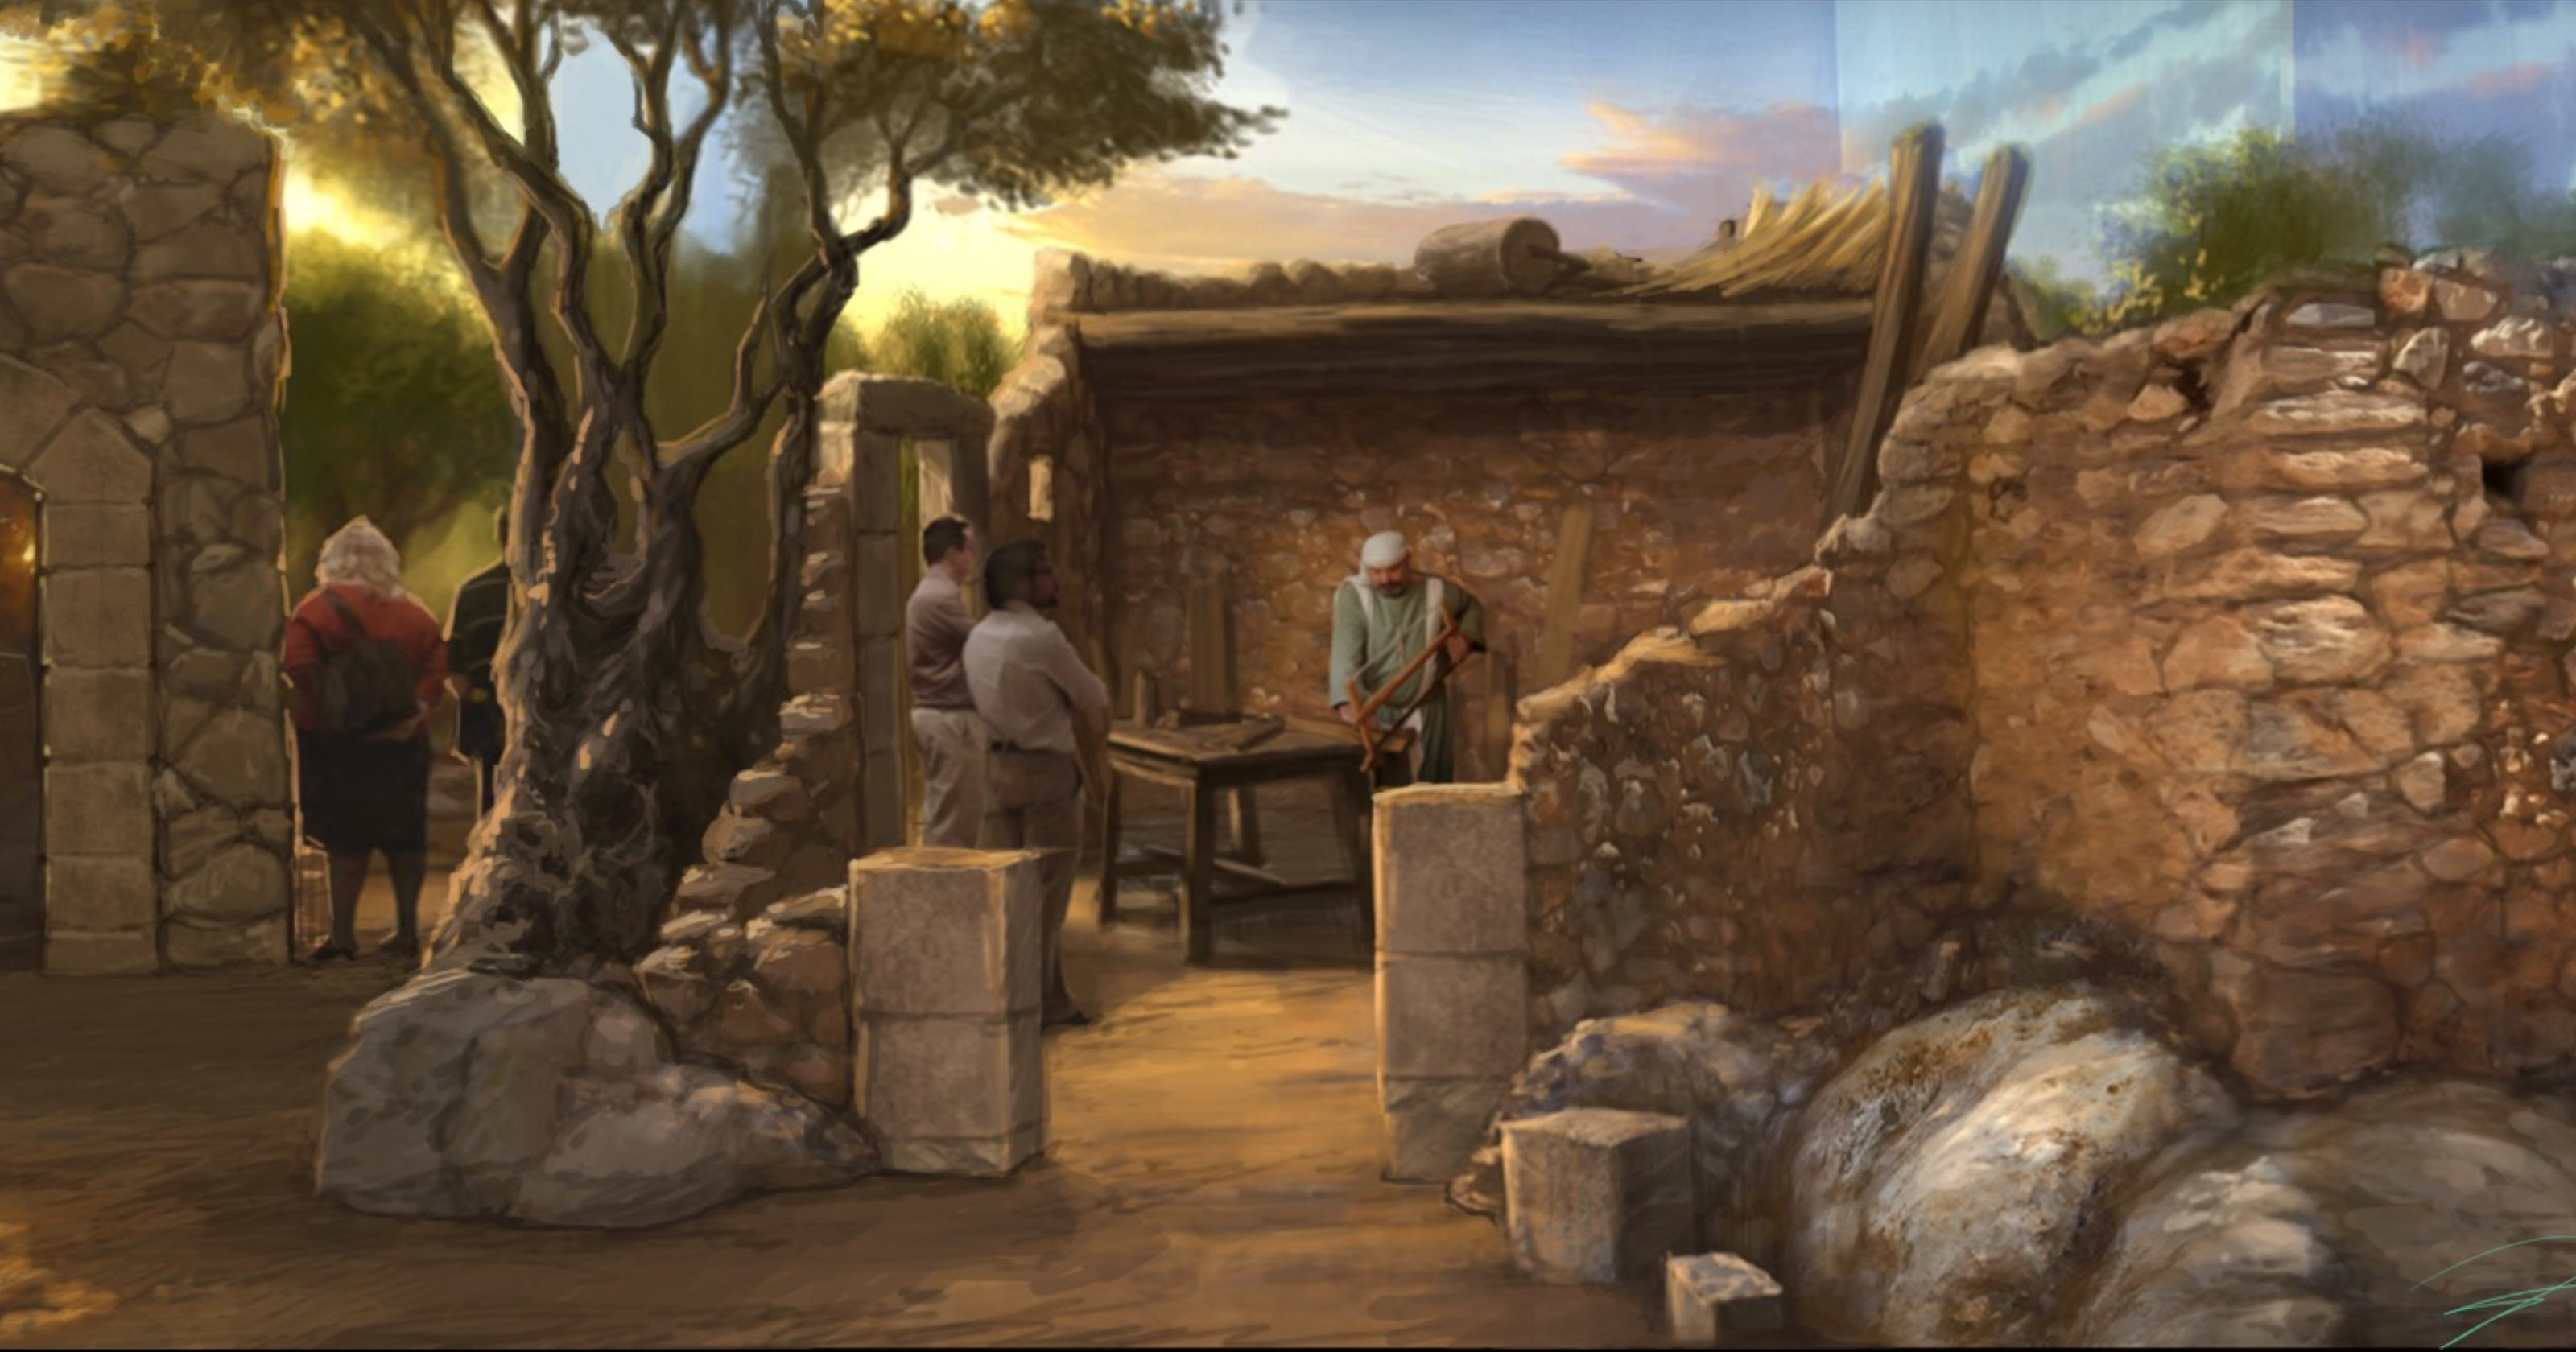 Museum of the Bible opens in Washington, D.C.